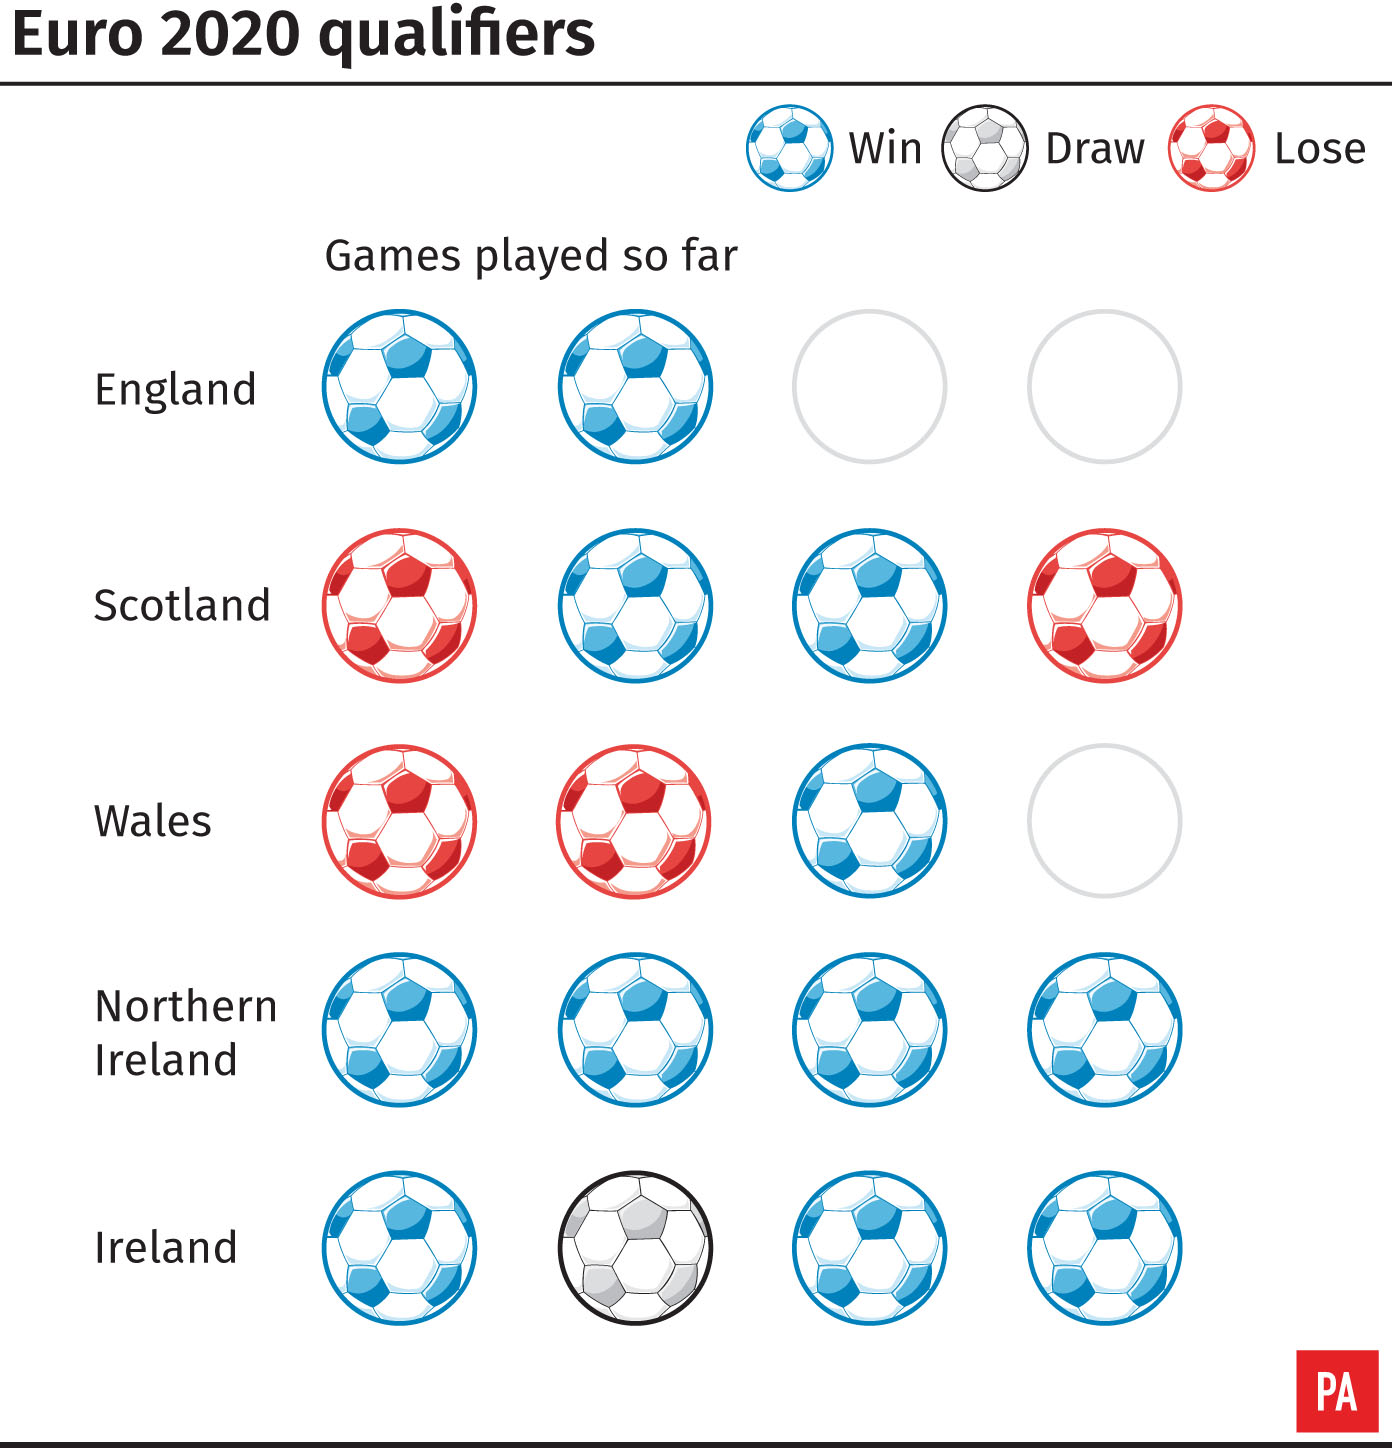 Qualifying form for Euro 2020 has been mixed for England, Scotland, Wales, Northern Ireland and the Republic of Ireland